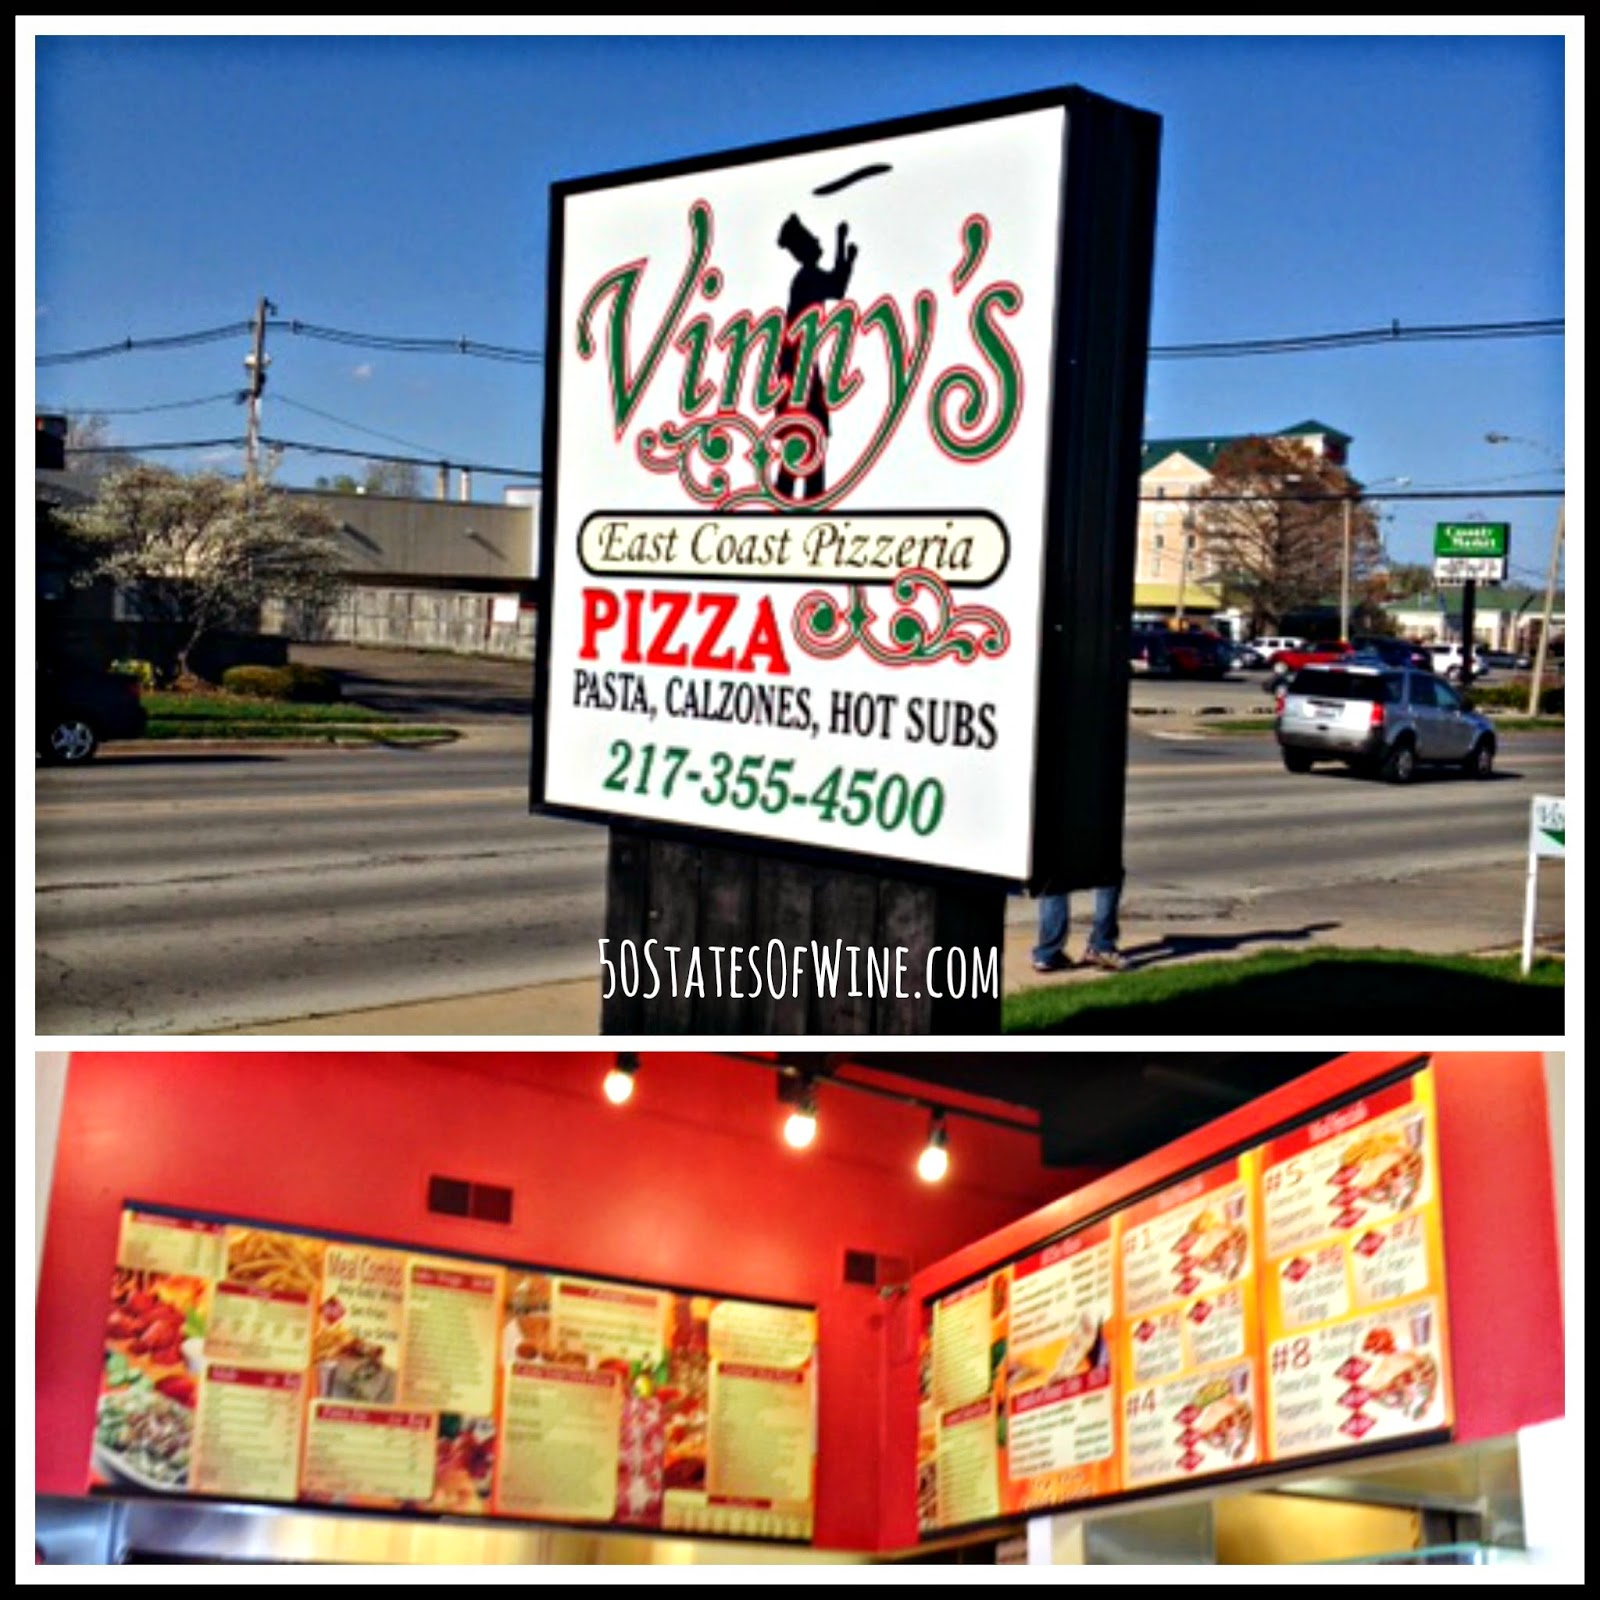 Vinny's East Coast Pizzeria